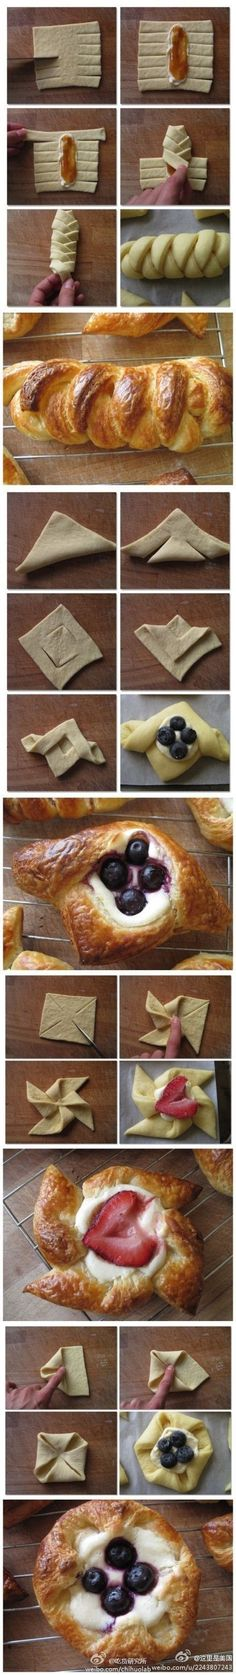 Pastry Folding Hacks Community Post: 40 Creative Food Hacks That Will Change The Way You Cook Köstliche Desserts, Dessert Recipes, Fun Recipes, Plated Desserts, Delicious Recipes, Recipe Ideas, Snacks Für Party, Baking And Pastry, Creative Food